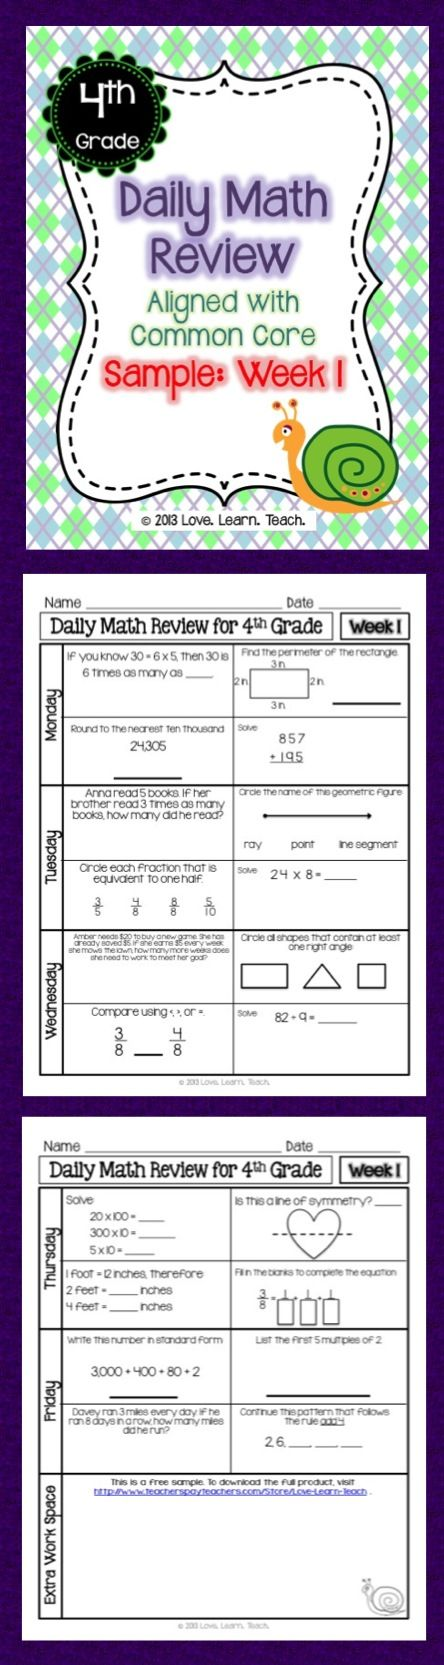 FREE 1-week sample of spiral Daily Math Review for 4th grade * Time, money, and paper saver! * One sheet of paper front/back per student per week #fourthgrade #commoncoremath